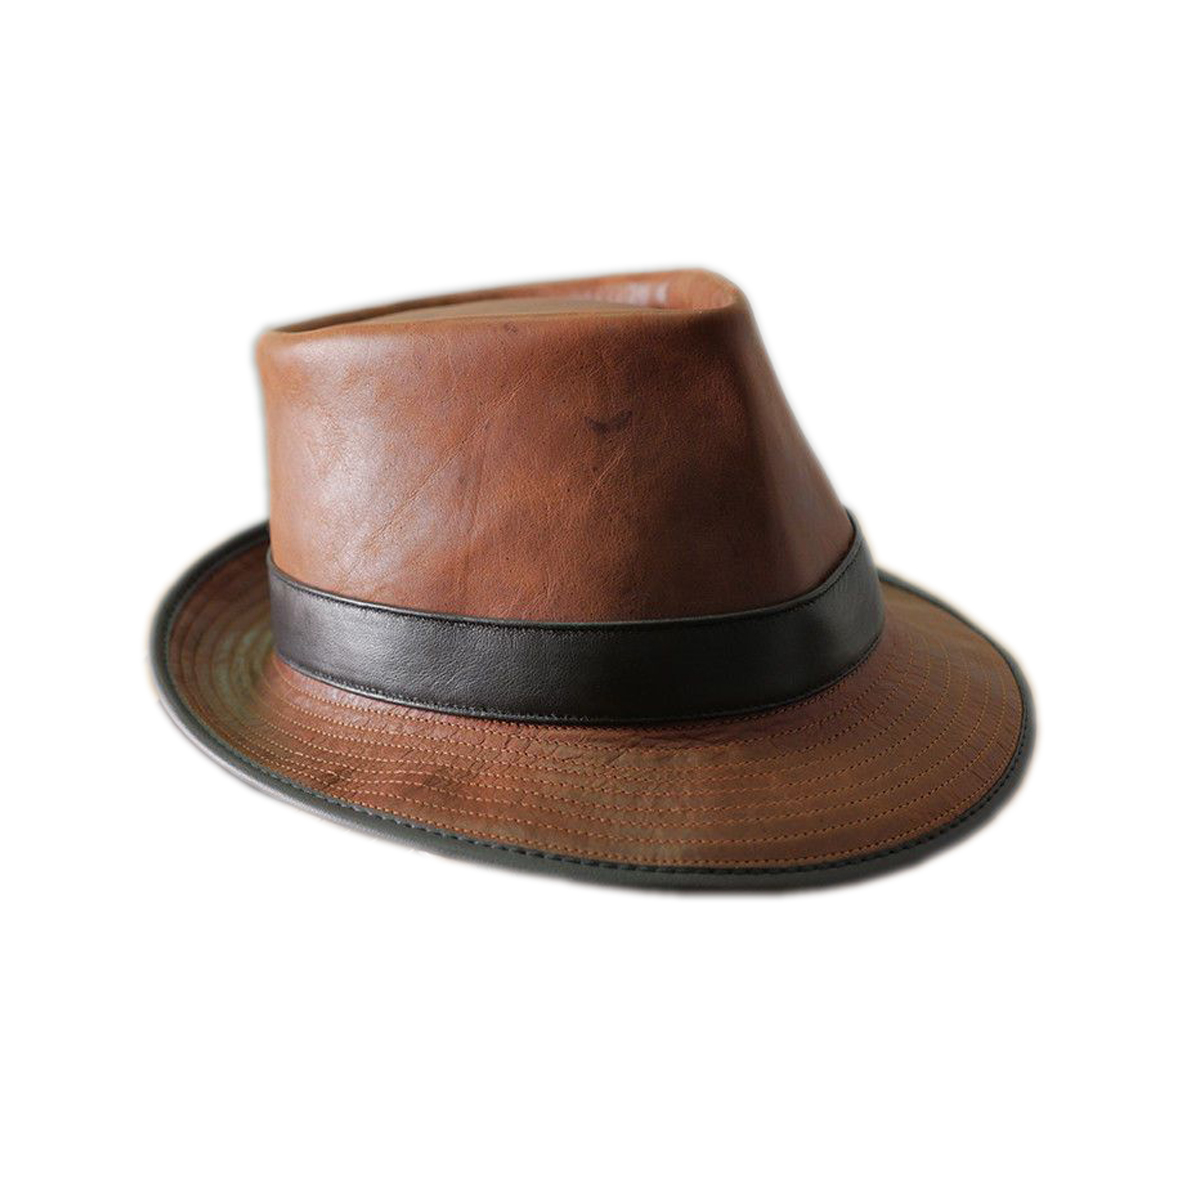 BROWN LEATHER HAT WITH BLACK STRAP